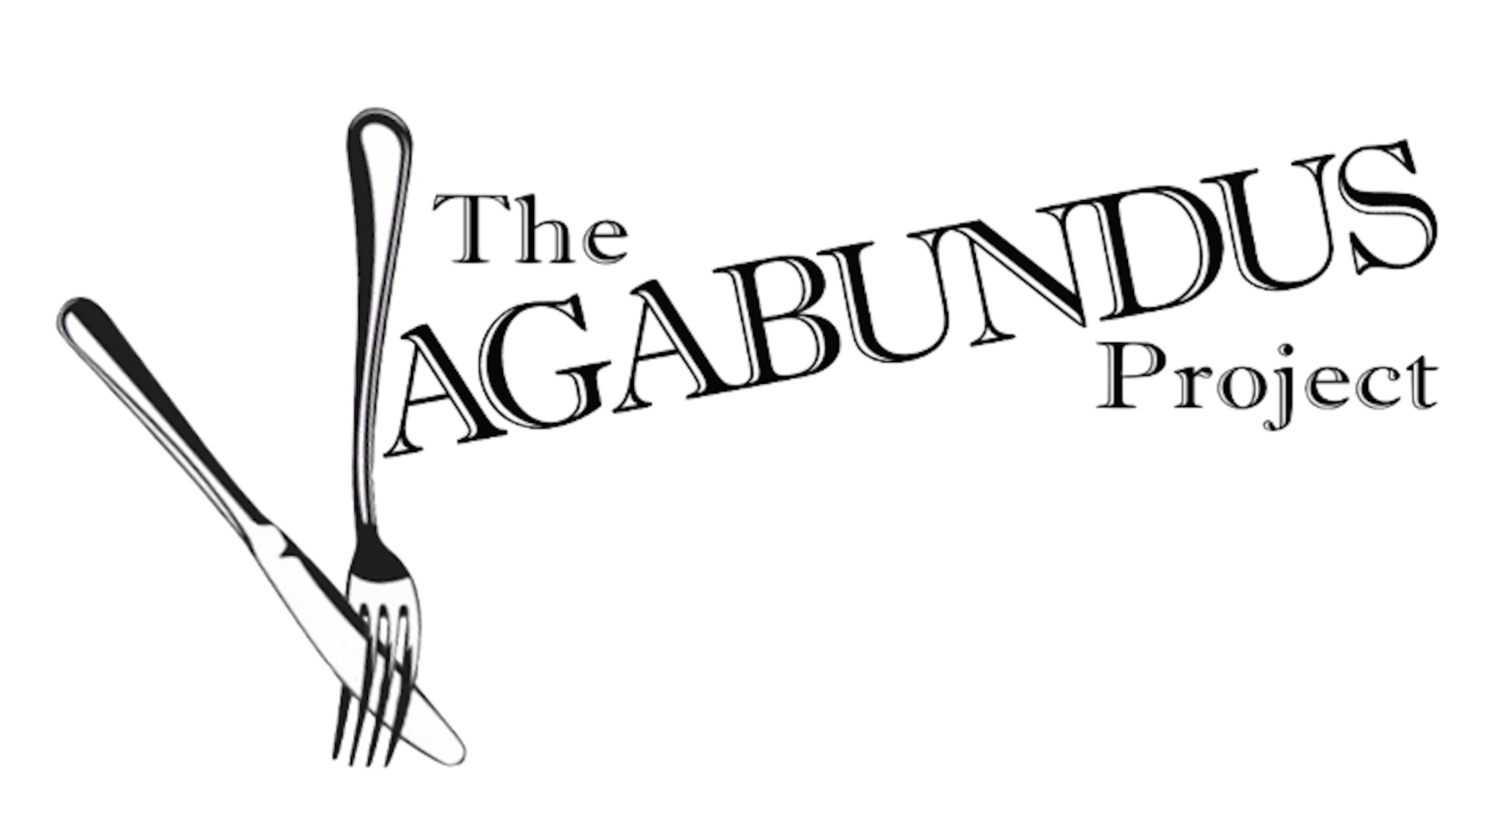 The Vagabundus Project